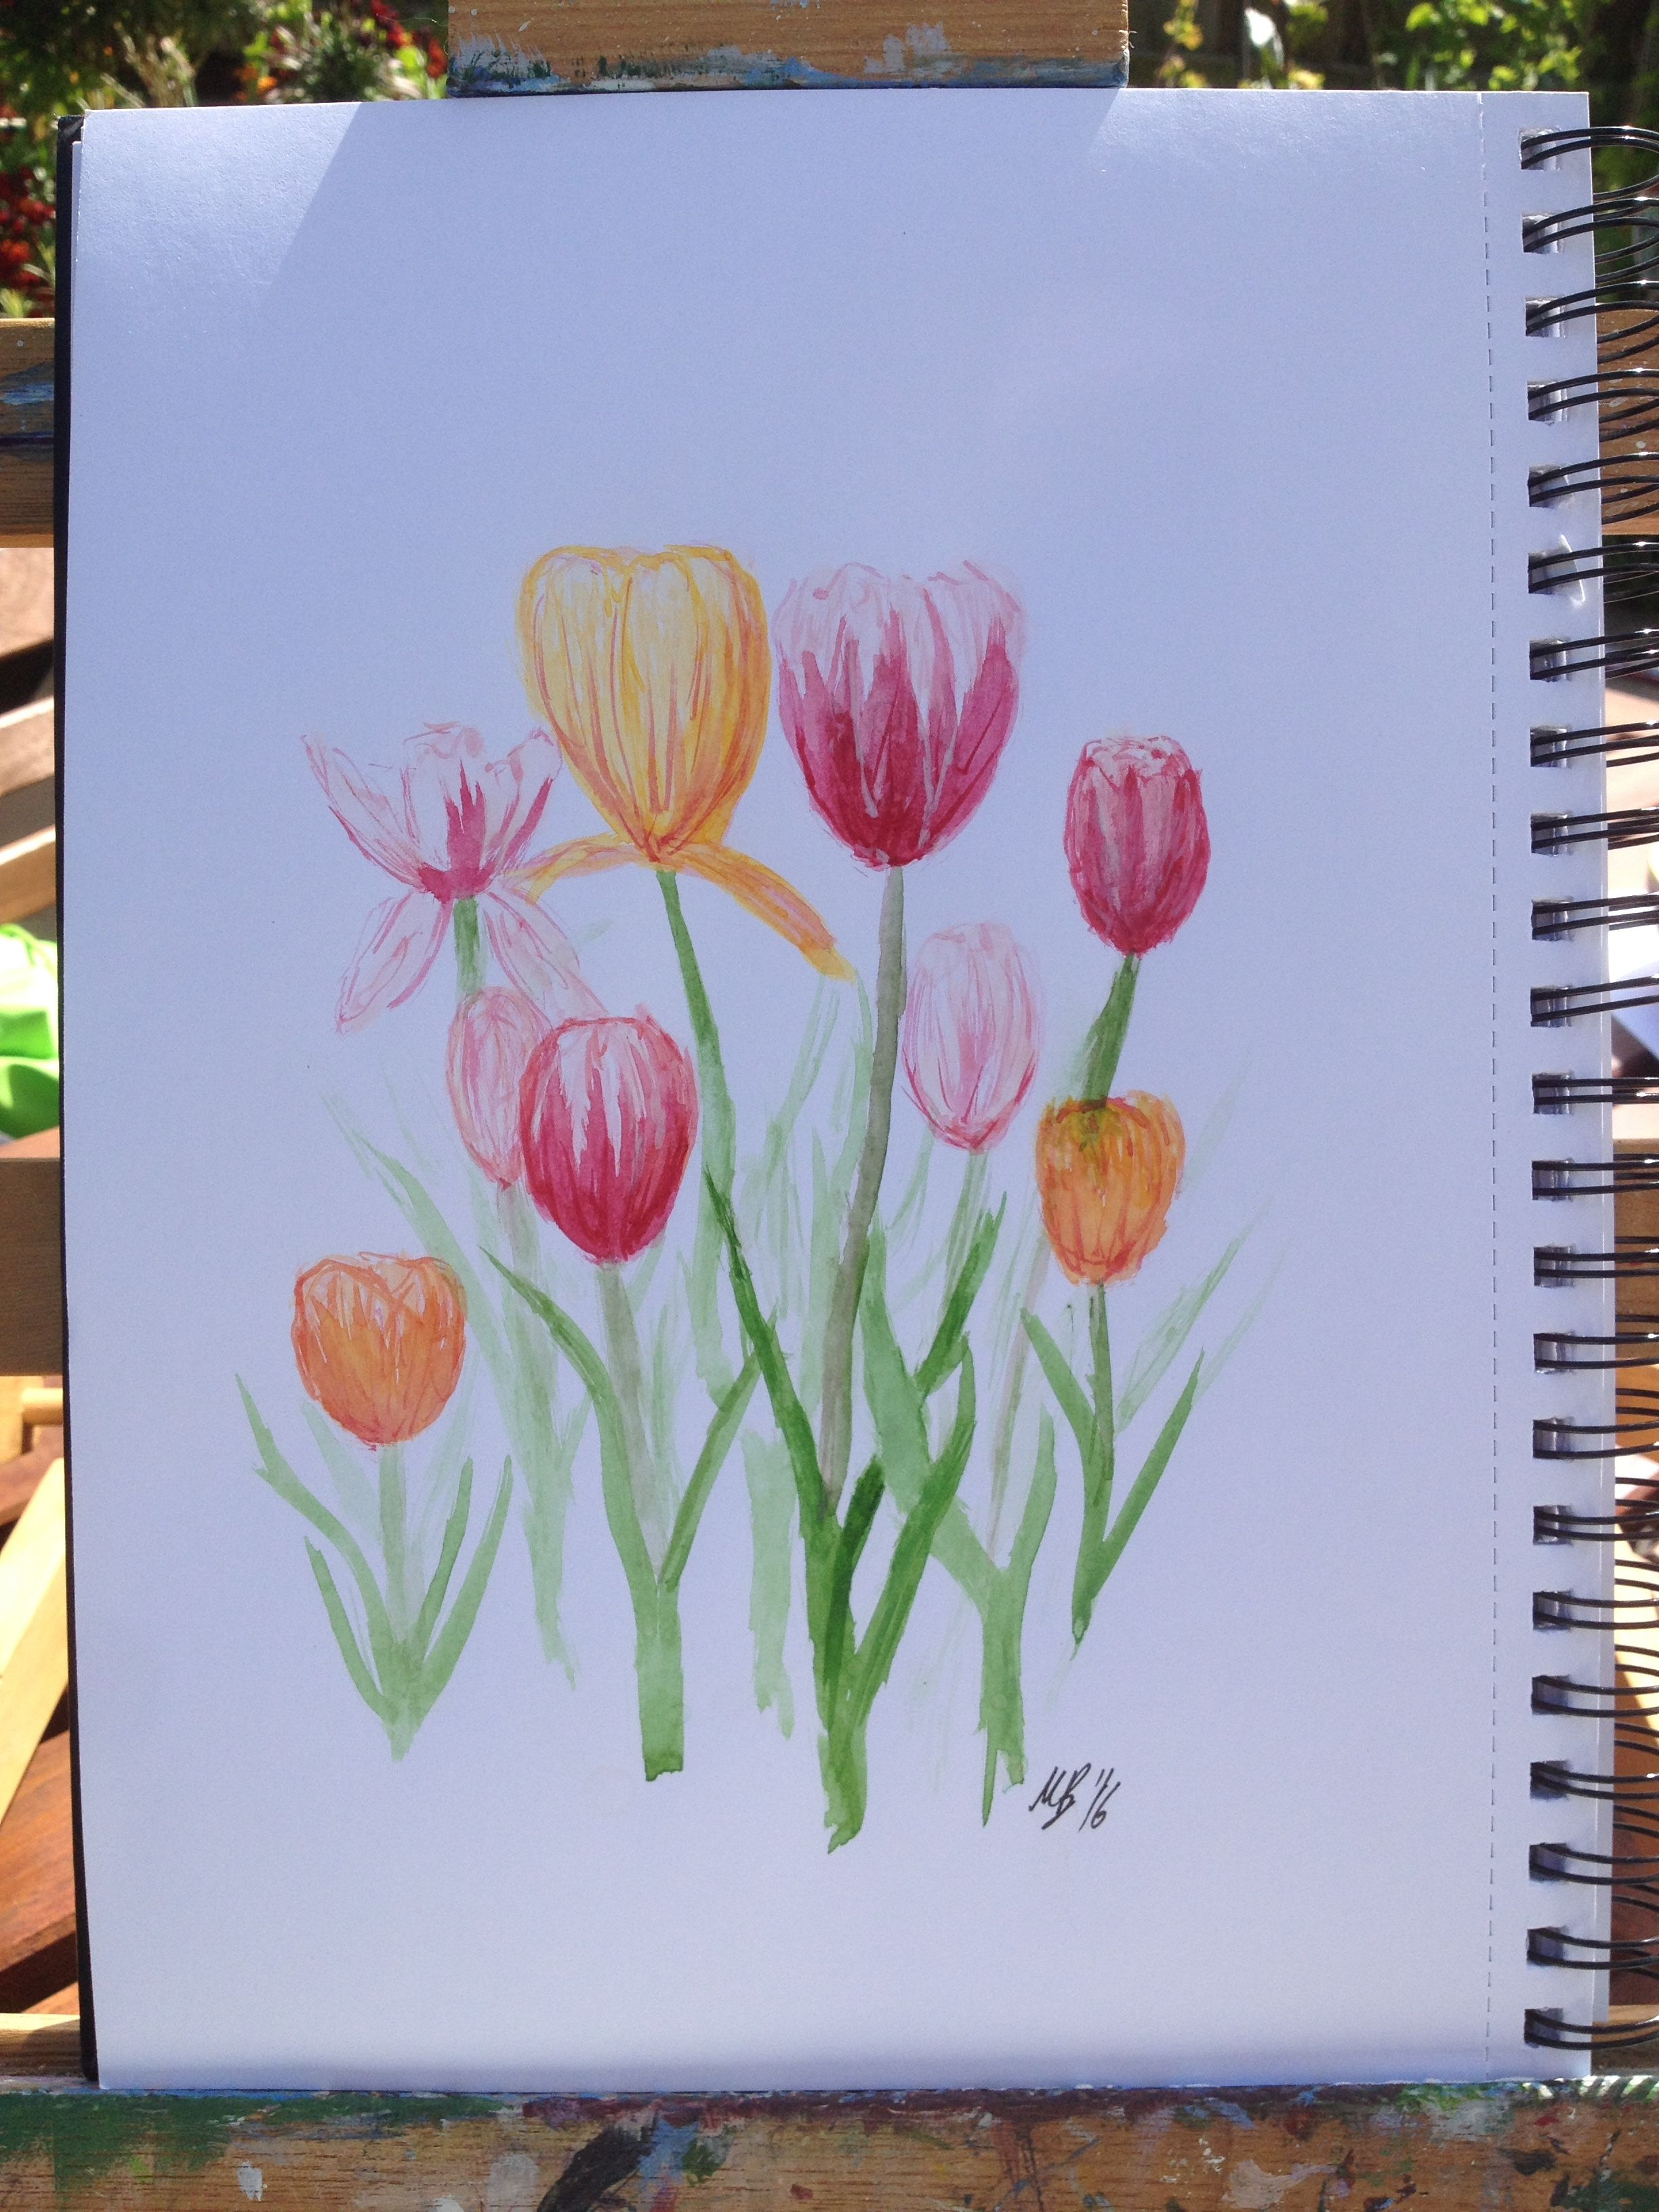 Tulips - outdoor water colour sketch